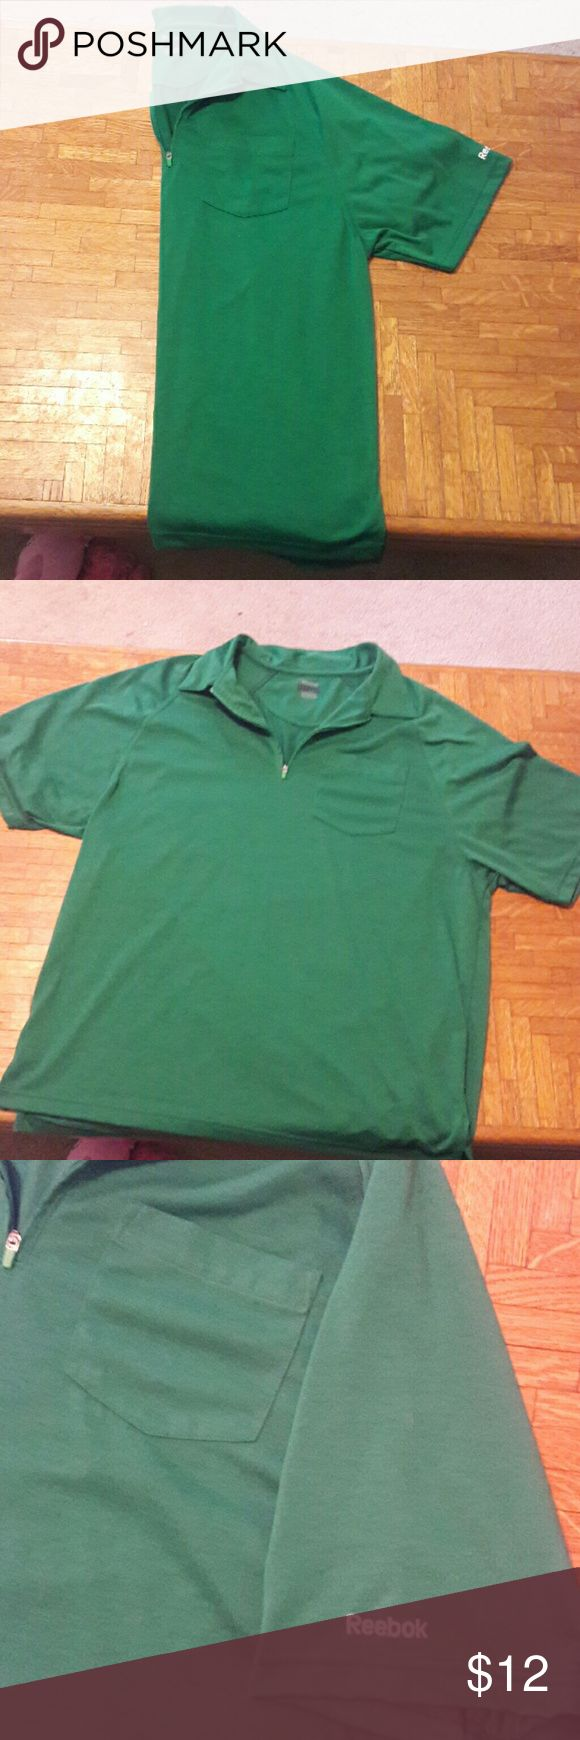 Reebok collared shirt Green short sleeve shirt with collar. Zips up on chest. Great condition Reebok Shirts Dress Shirts